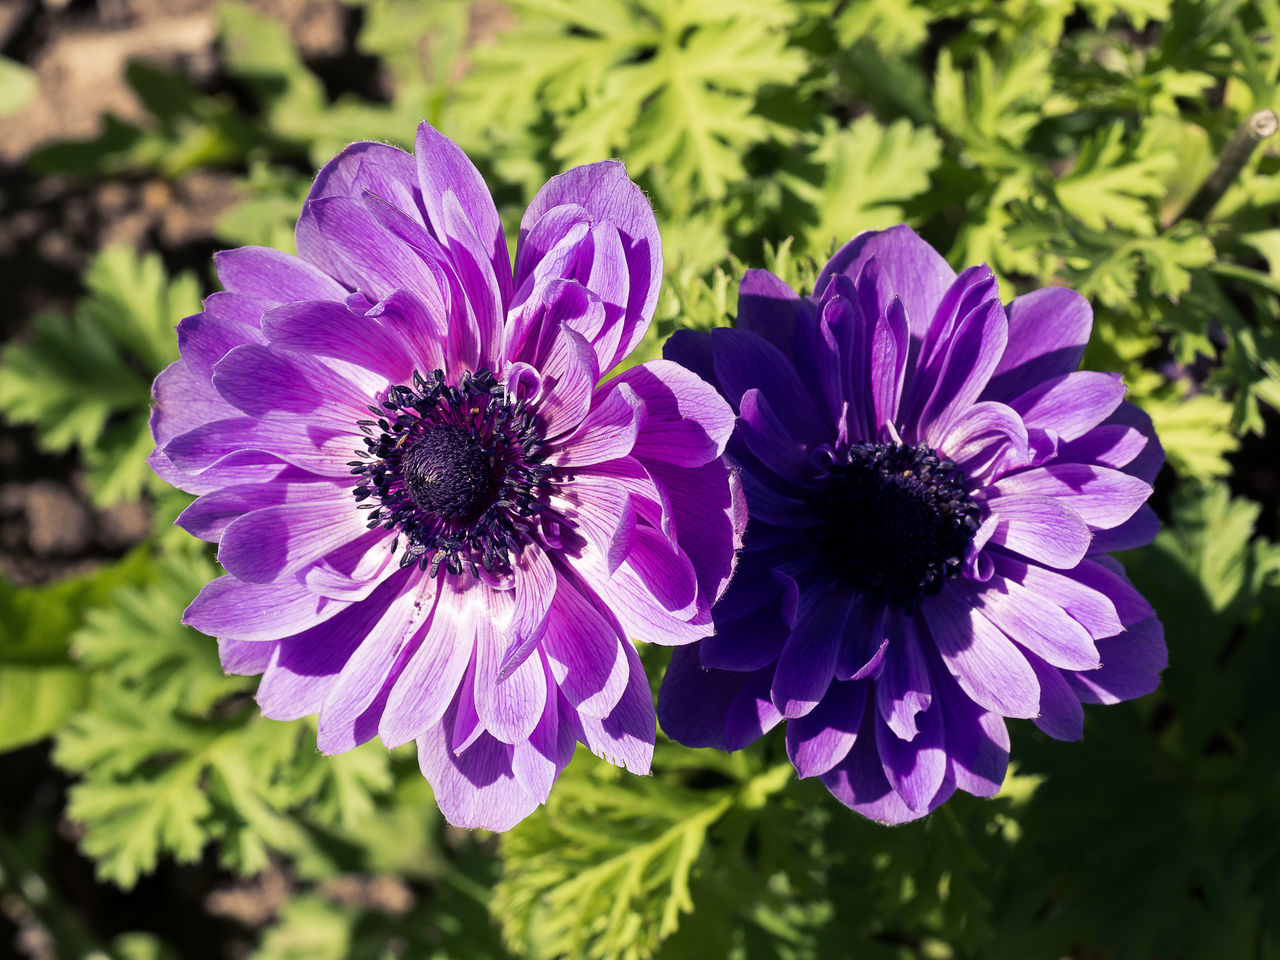 flower, petal, beauty in nature, purple, nature, fragility, growth, plant, flower head, no people, freshness, blooming, day, outdoors, osteospermum, close-up